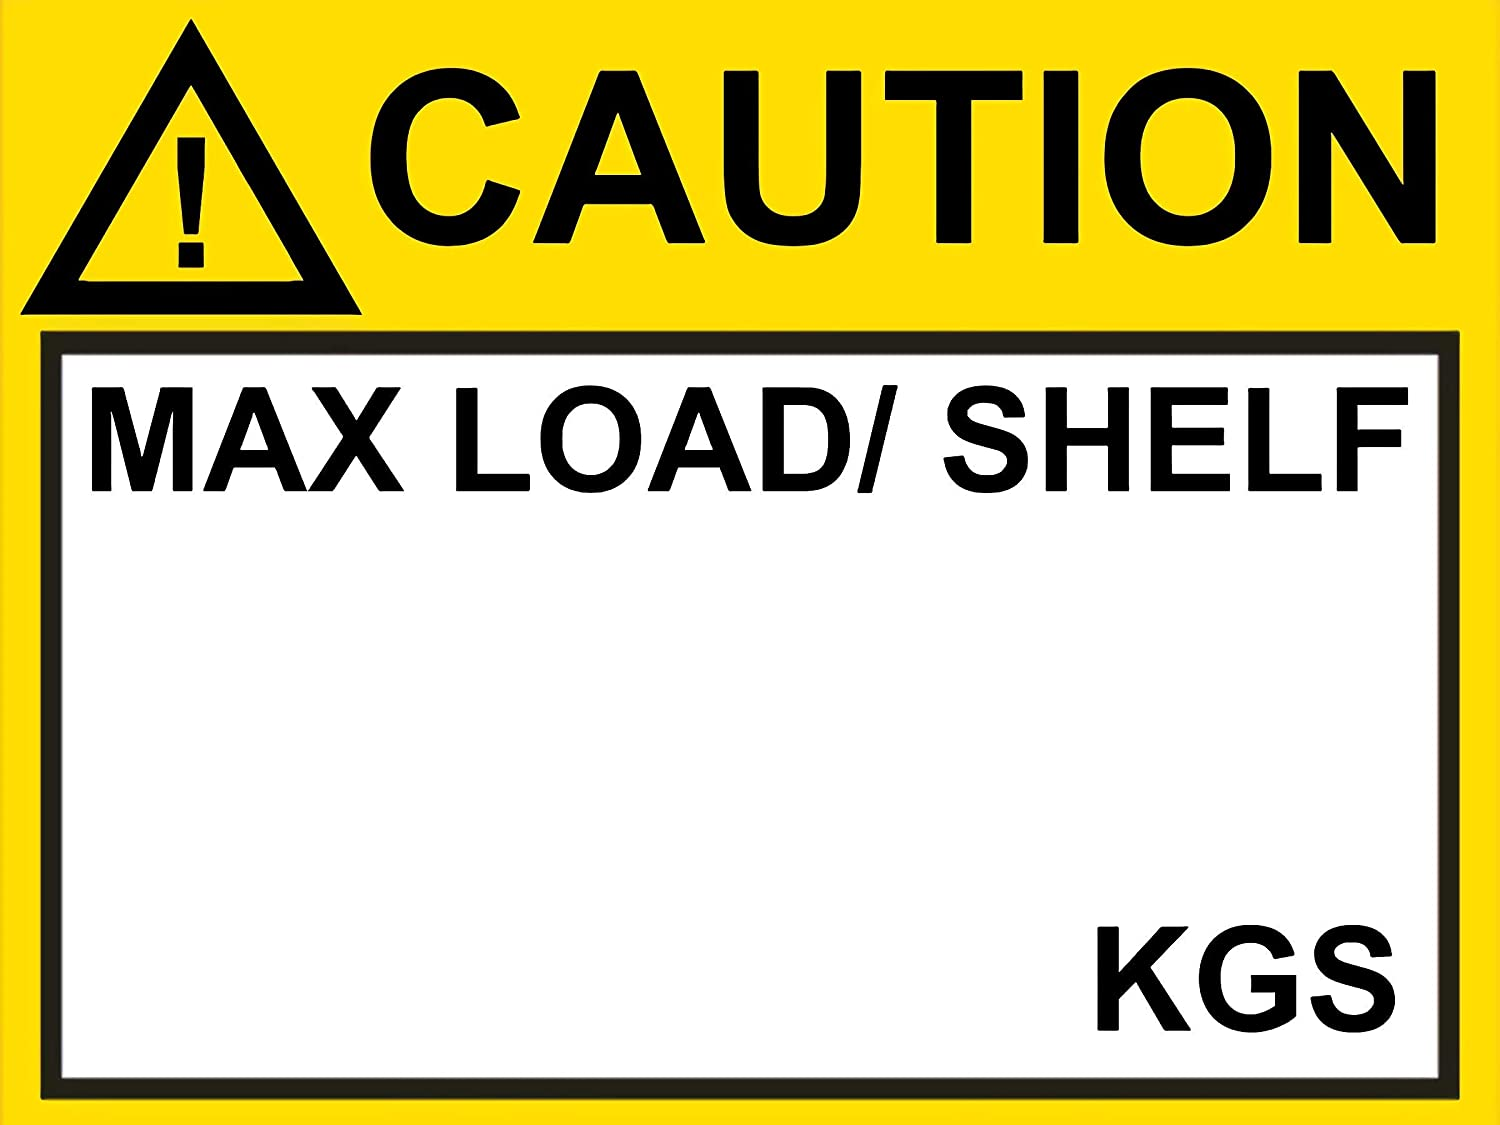 Case of 20 Packs, 25 Pcs/Pack, Pallet Rack Capacity Label, 3×4 in. / 76.2×101.6 mm Industrial Strength Sticker for Warehouse Safety, Caution MAX Load/Shelf KGS, 0.004 in. / 0.1 mm Smooth MU01